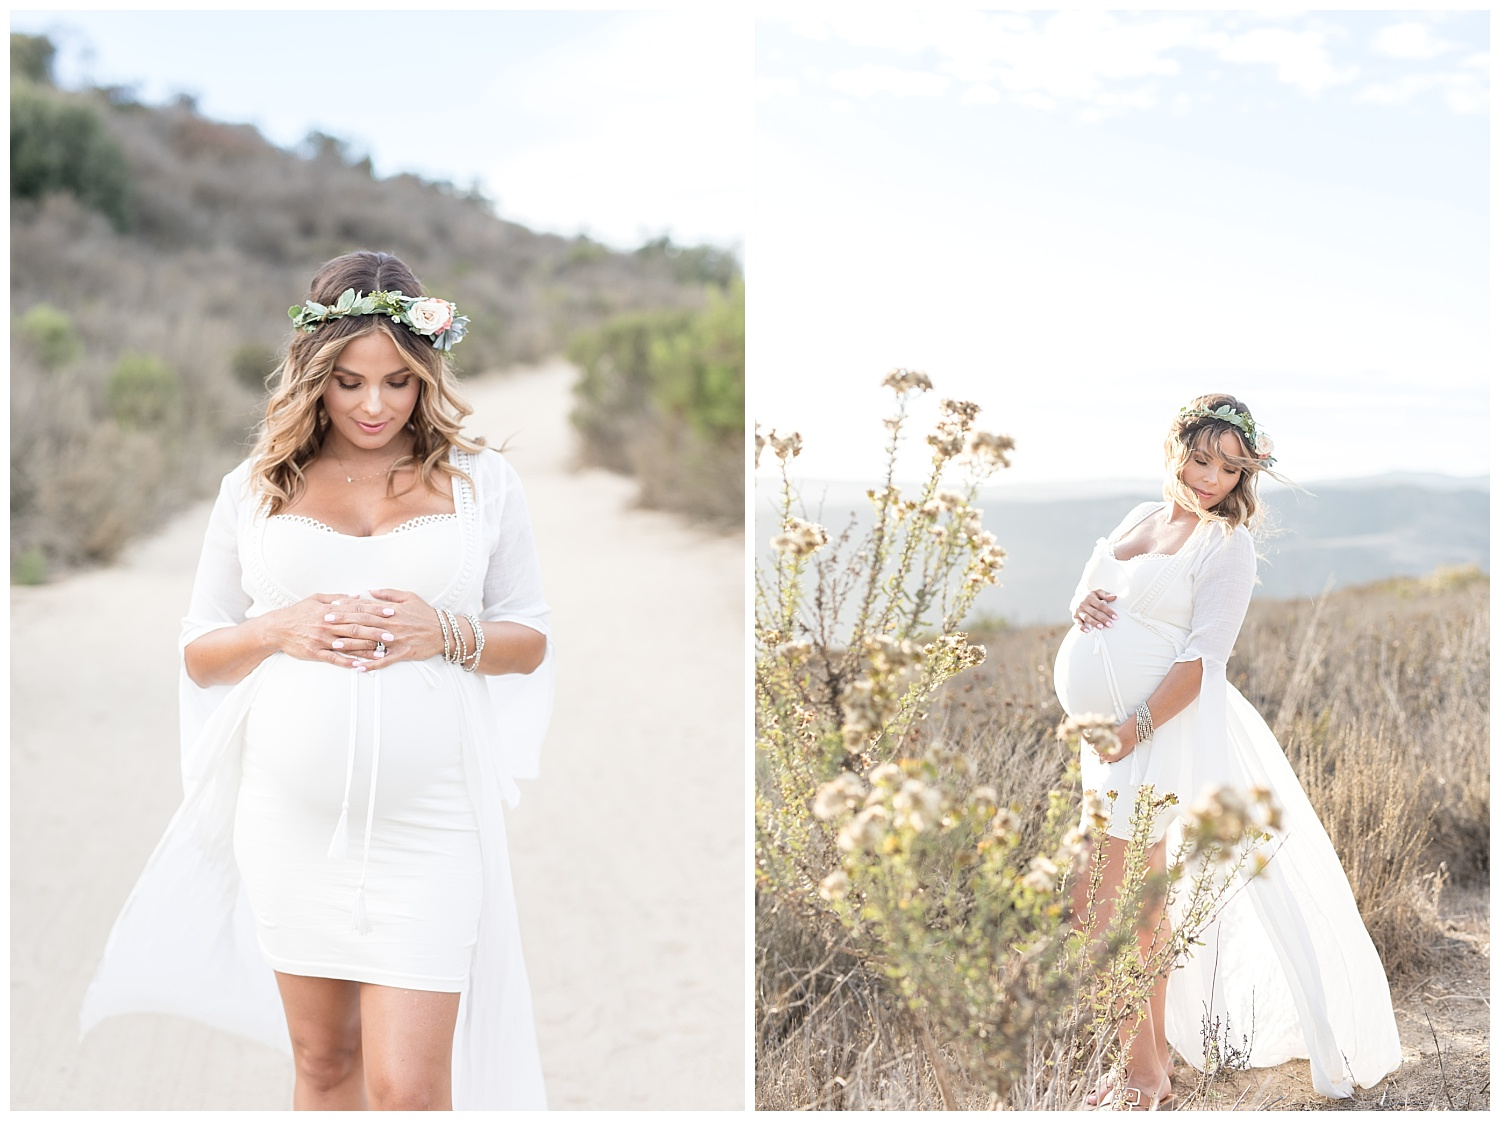 ashley - laguna beach, orange county hiking trail - maternity-0002